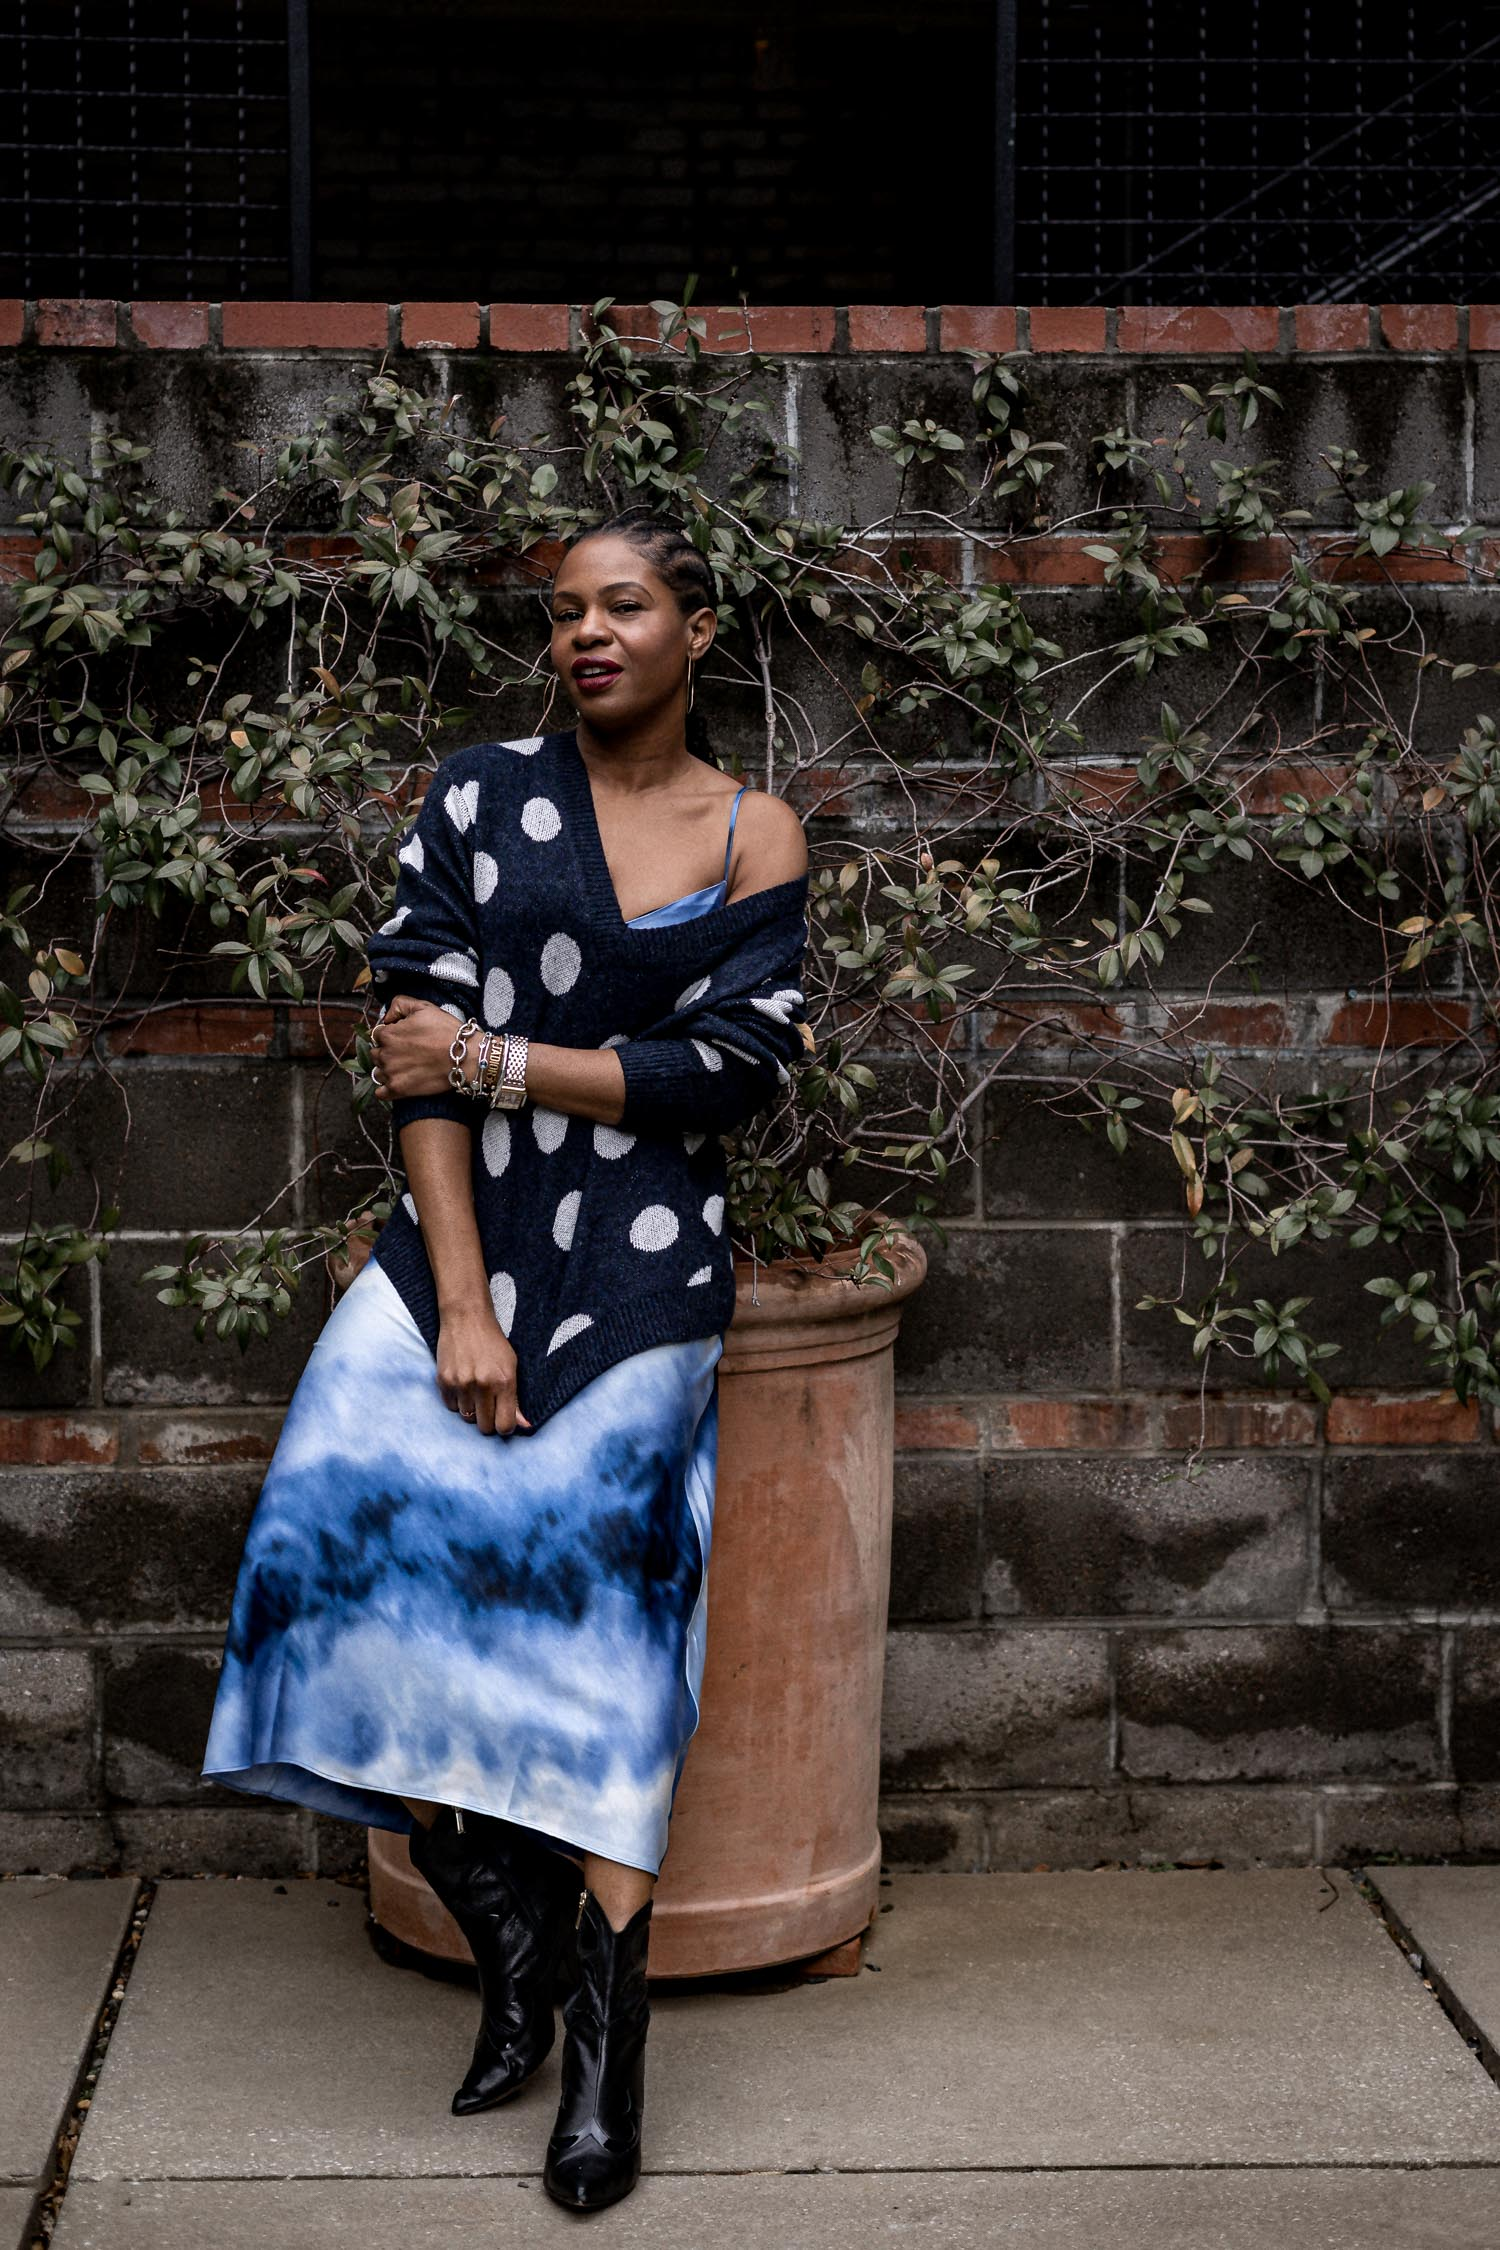 atlanta blogger monica awe-etuk wearing scoop at walmart tye-die slip dress and tye-die denim jacket, tye-die slip dress, how to wear tie-dye in cold weather, 2020 spring trends, what to wear for spring, how to wear spring trends in cold weather, spring trends to buy in 2020, pre-spring, transitional wear for spring , spring fashion , walmart, scoop, scoop at walmart